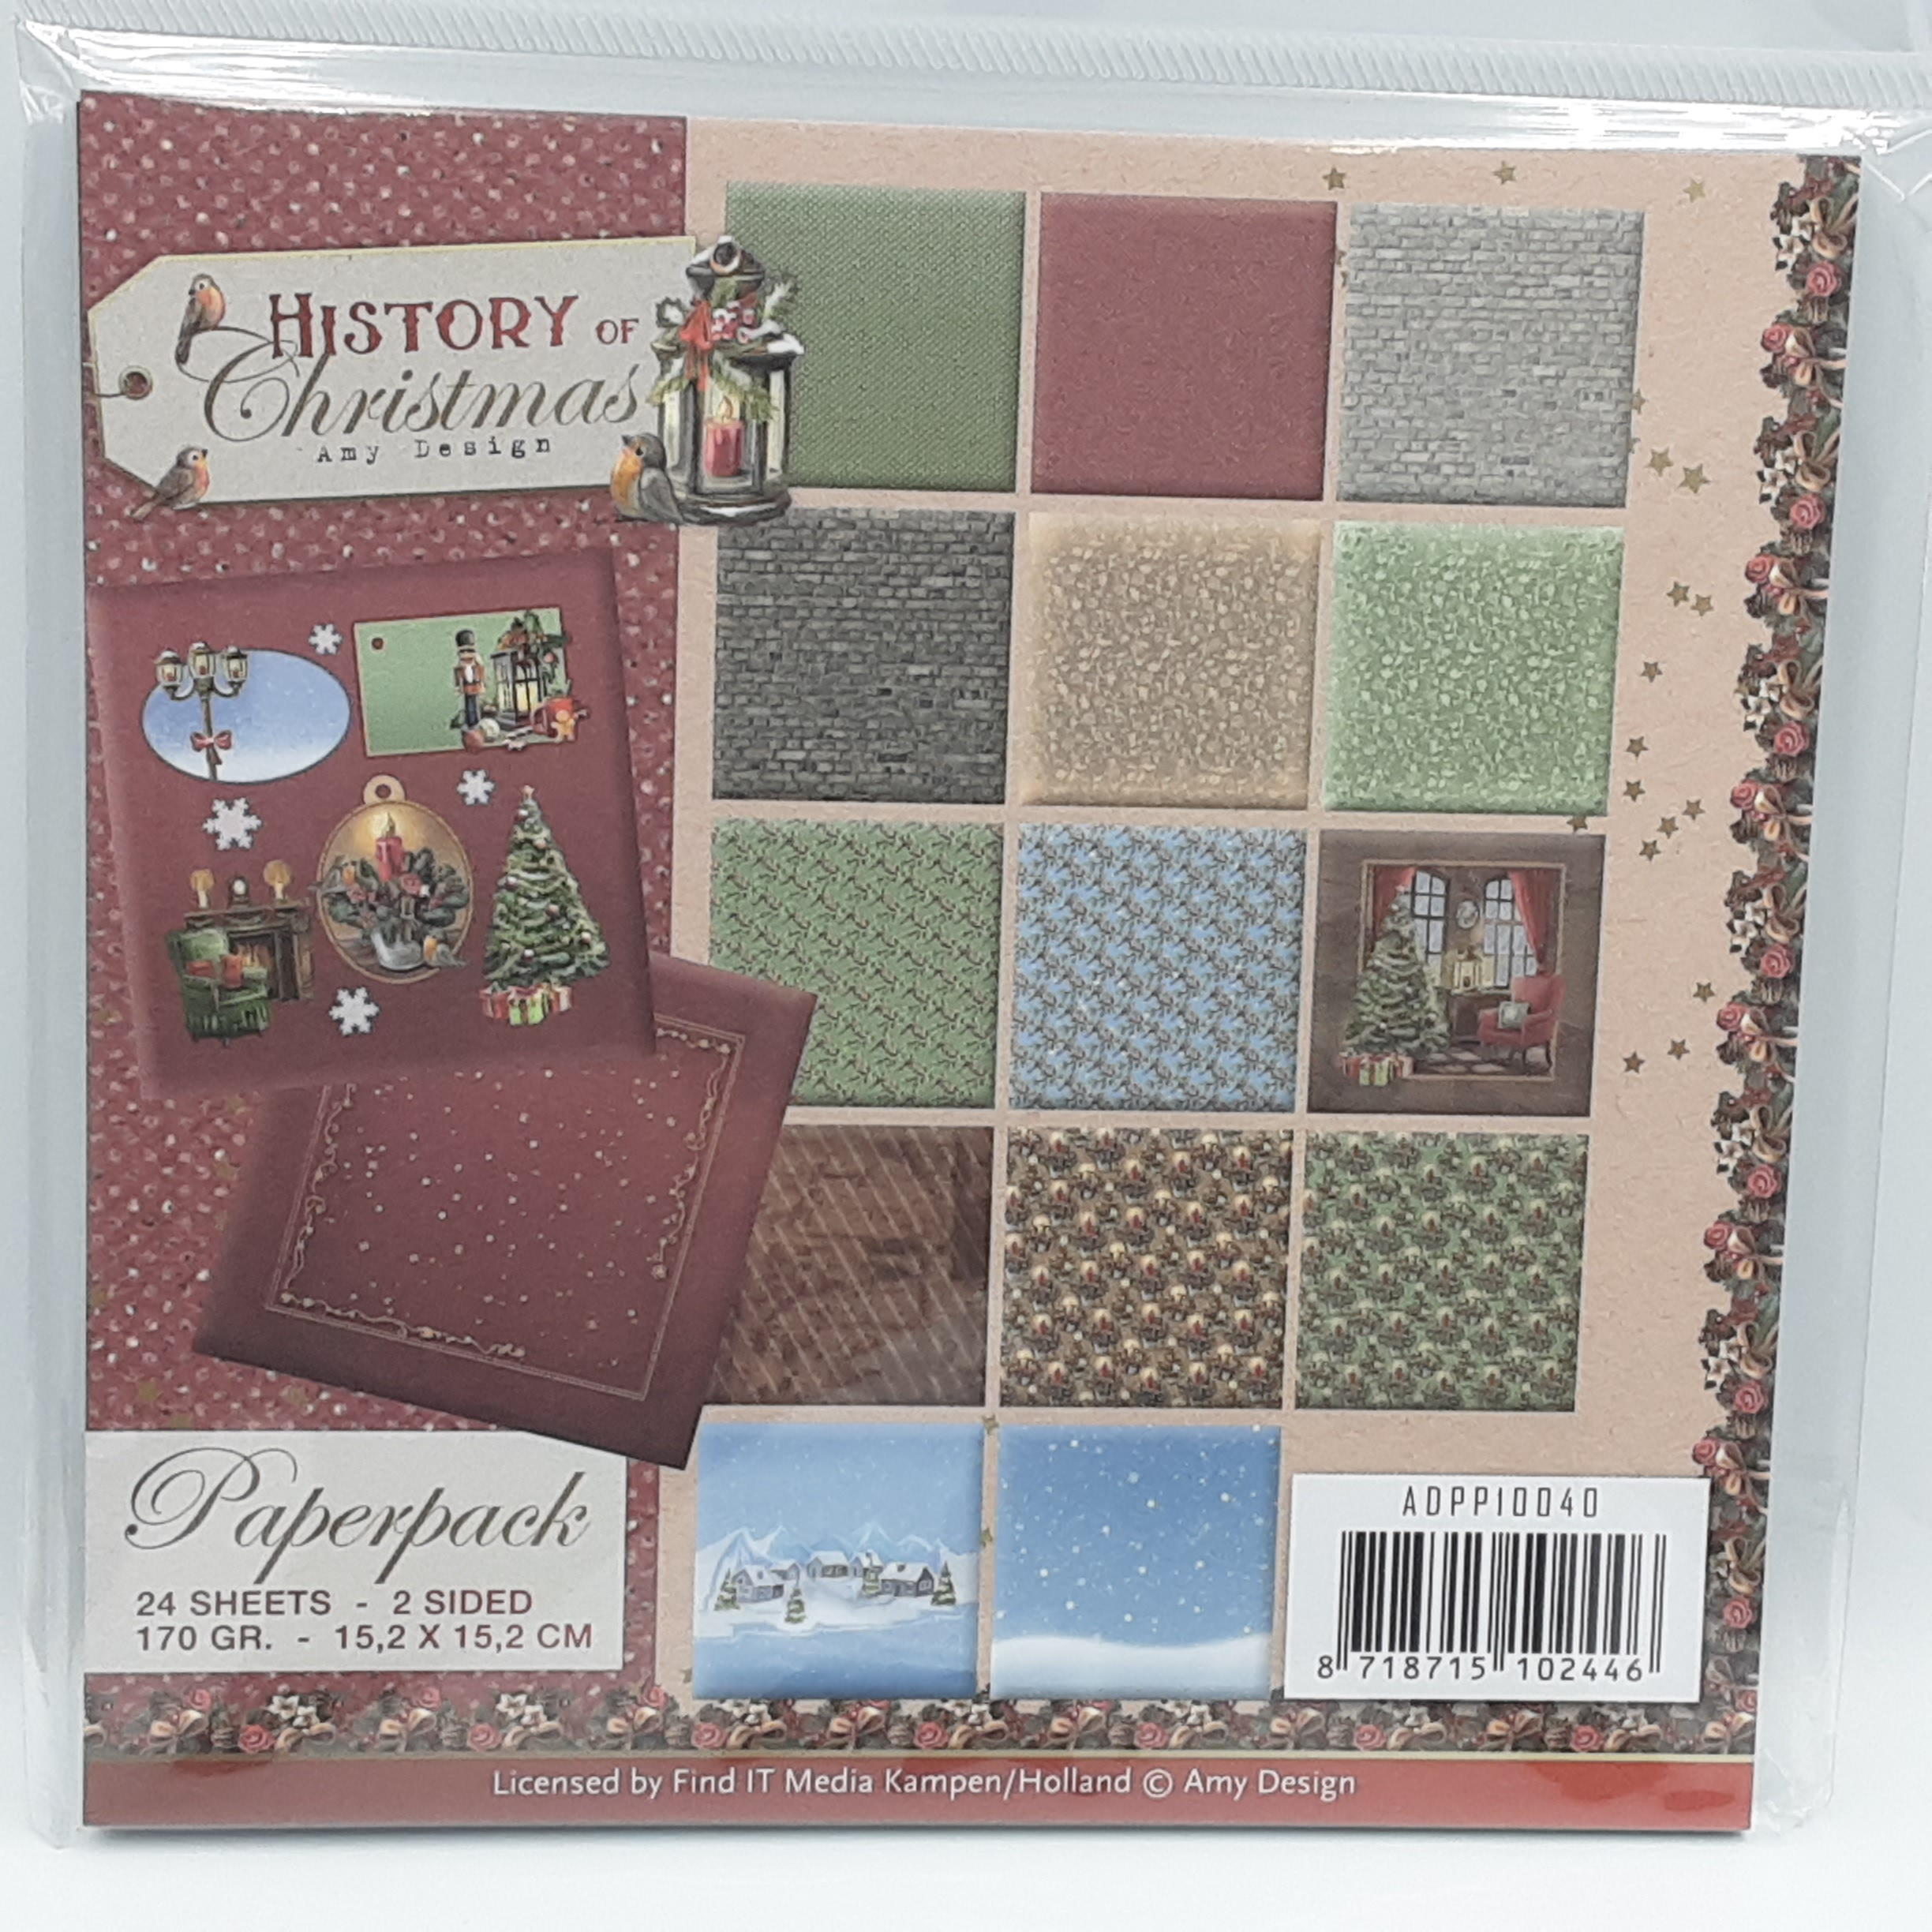 History of christmas paperpack